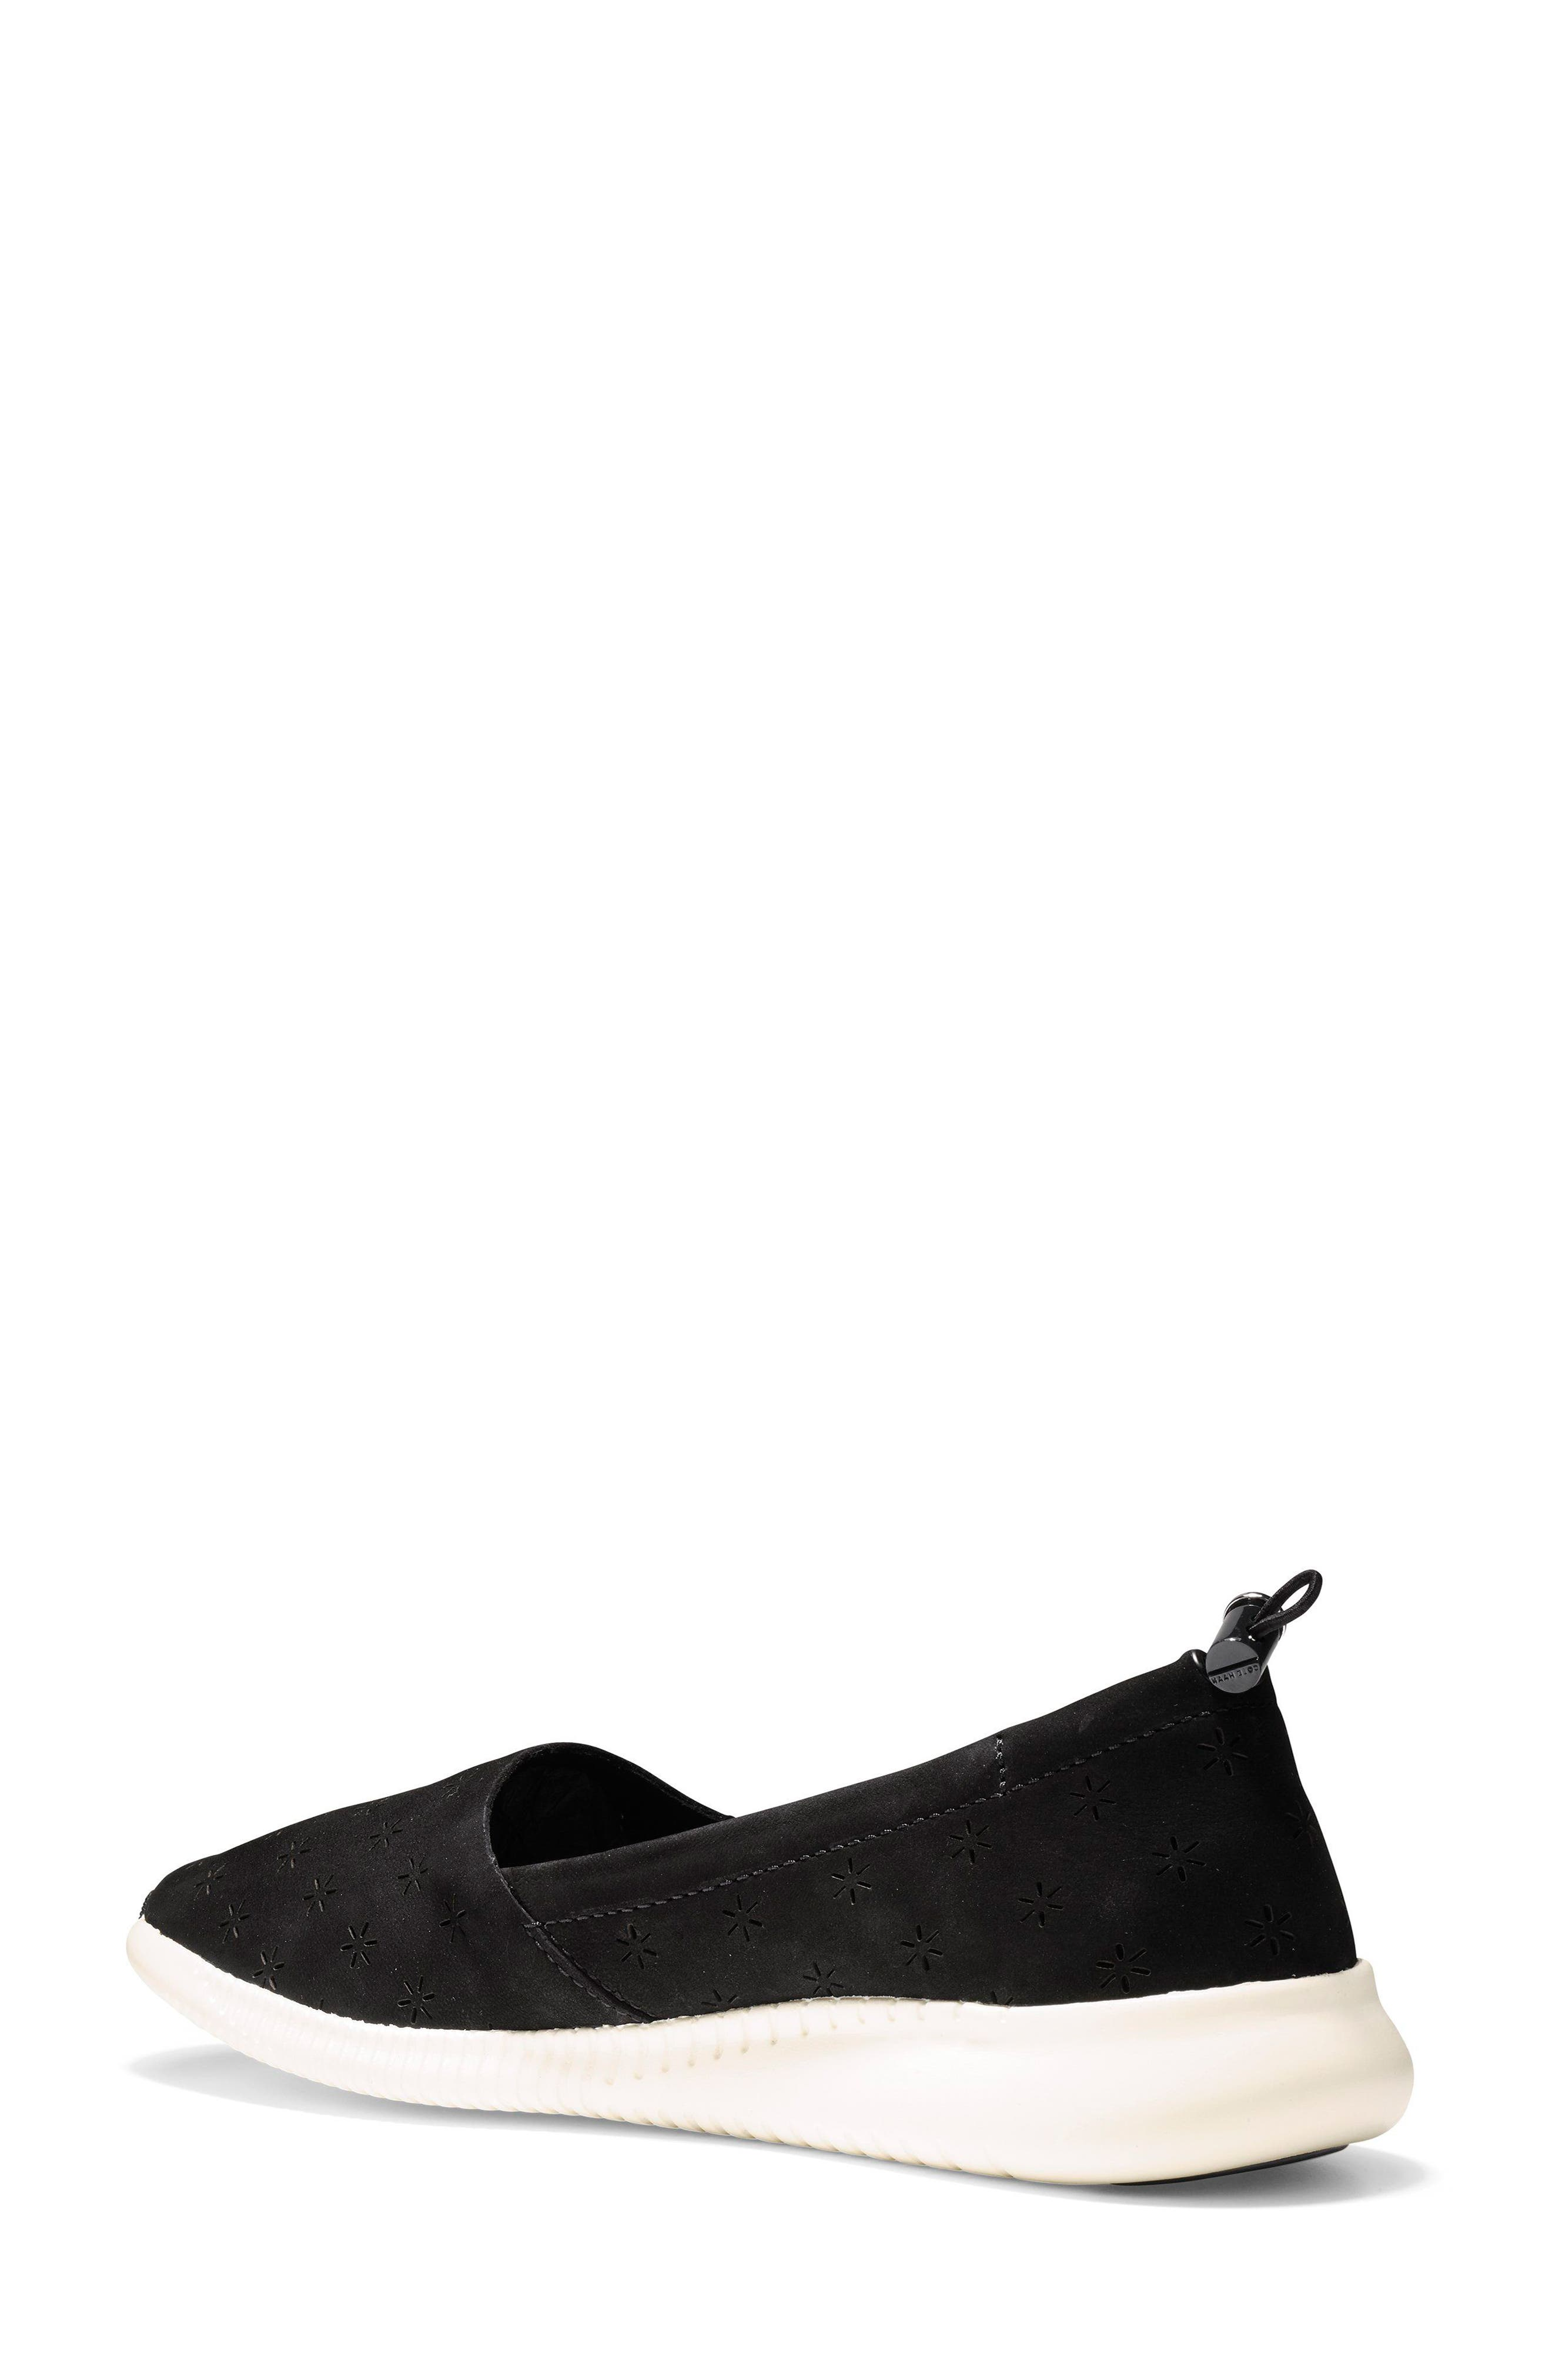 Studiogrand Perforated Slip-on,                             Alternate thumbnail 2, color,                             001